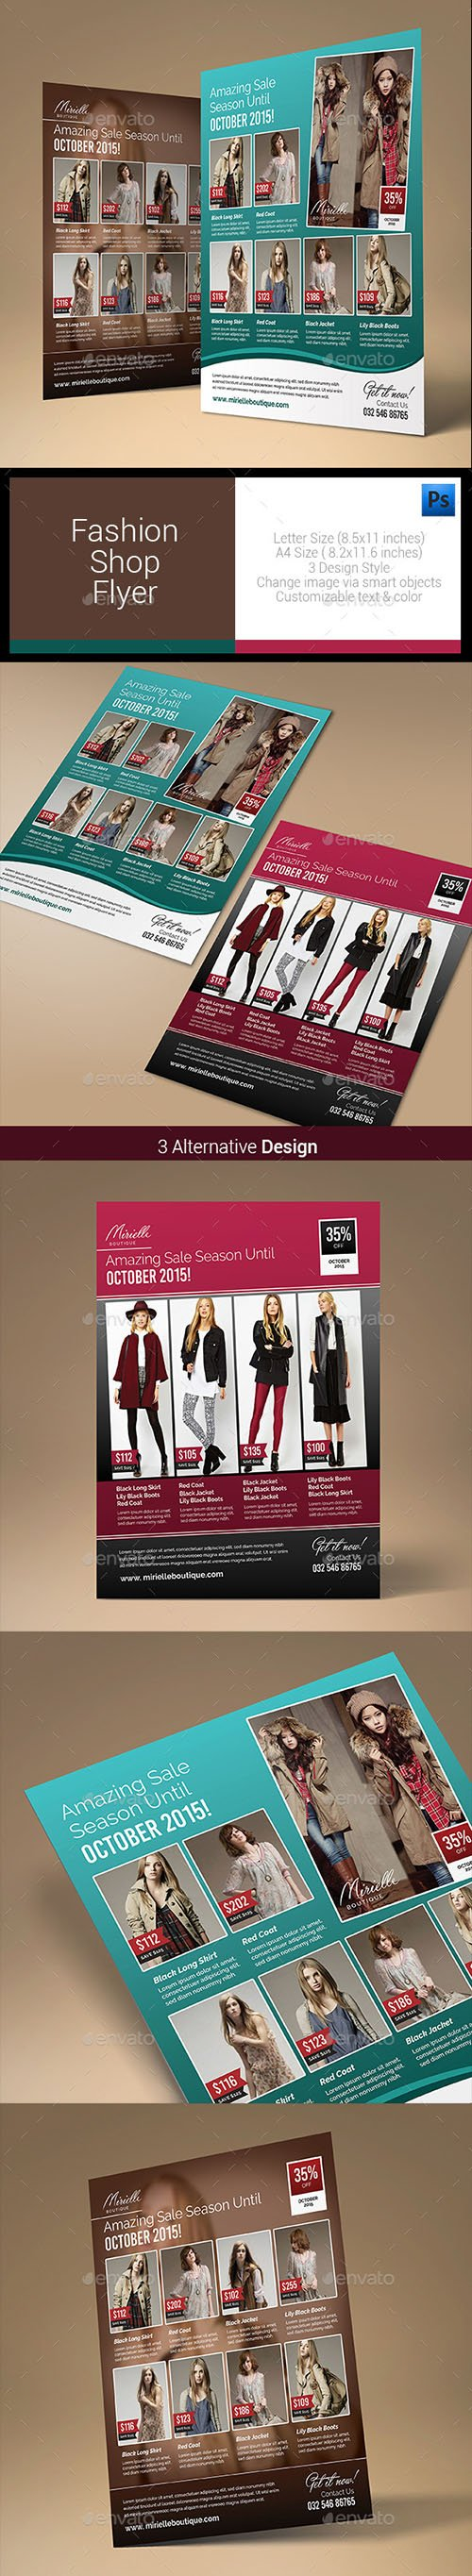 GR - Fashion Shop Flyer 10671062